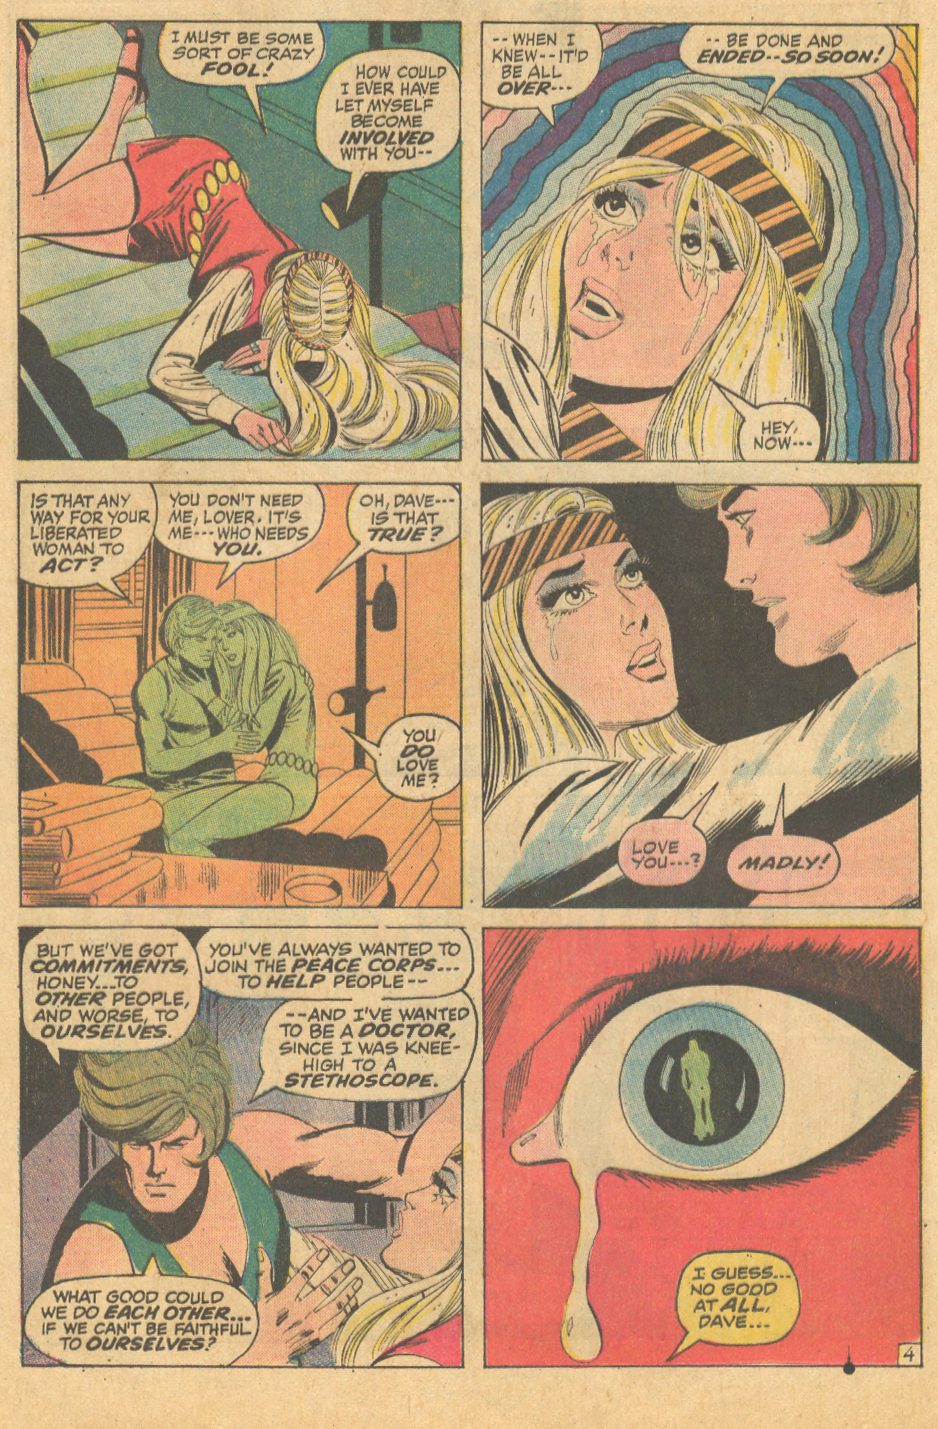 """"""" One Fleeting Moment..! """"  Our Love Story  #15 (February 1972) Pencils by Steve Englehart"""